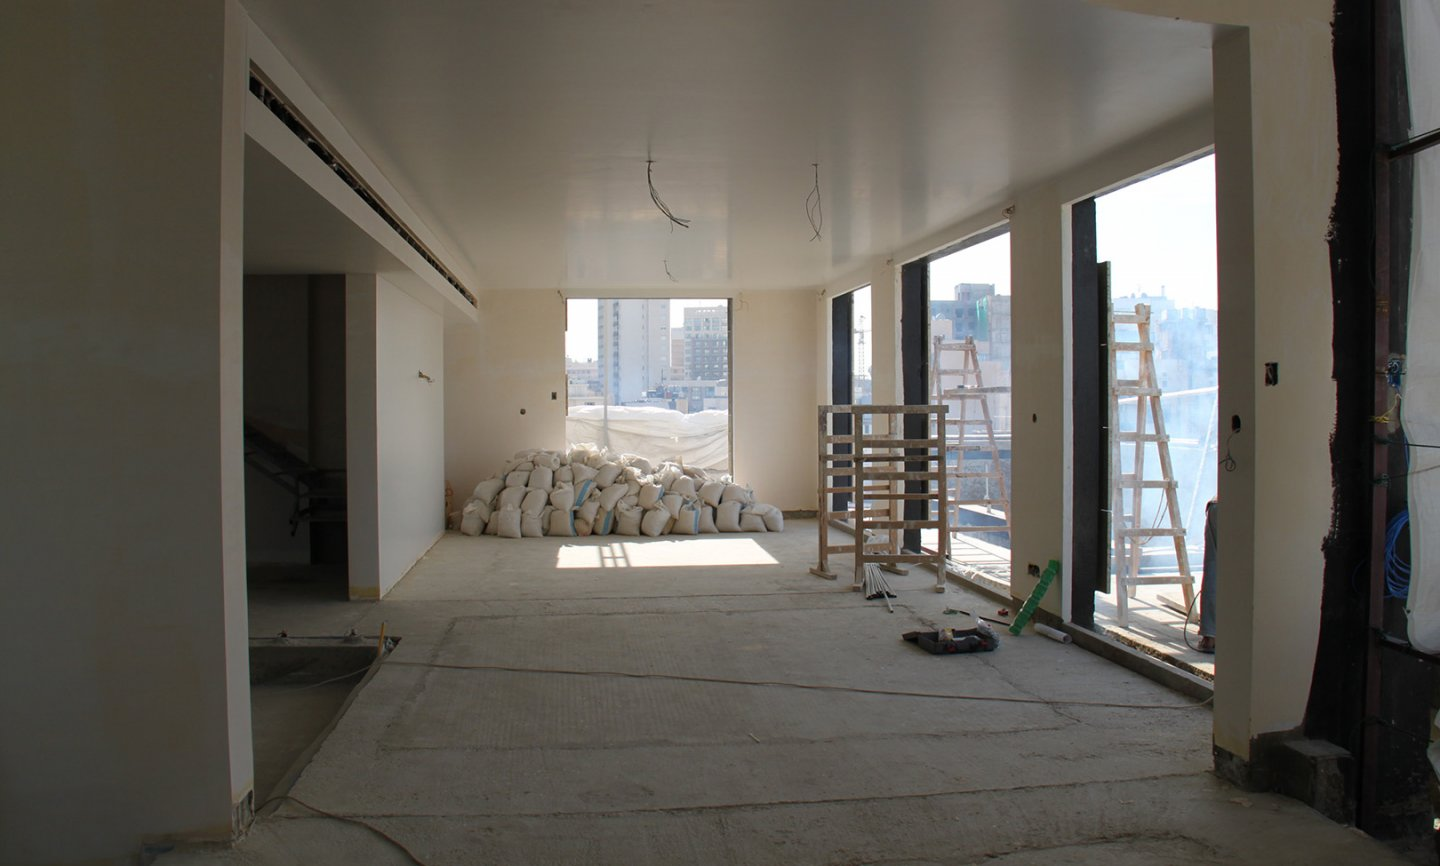 M.N Apartment - construction phase image